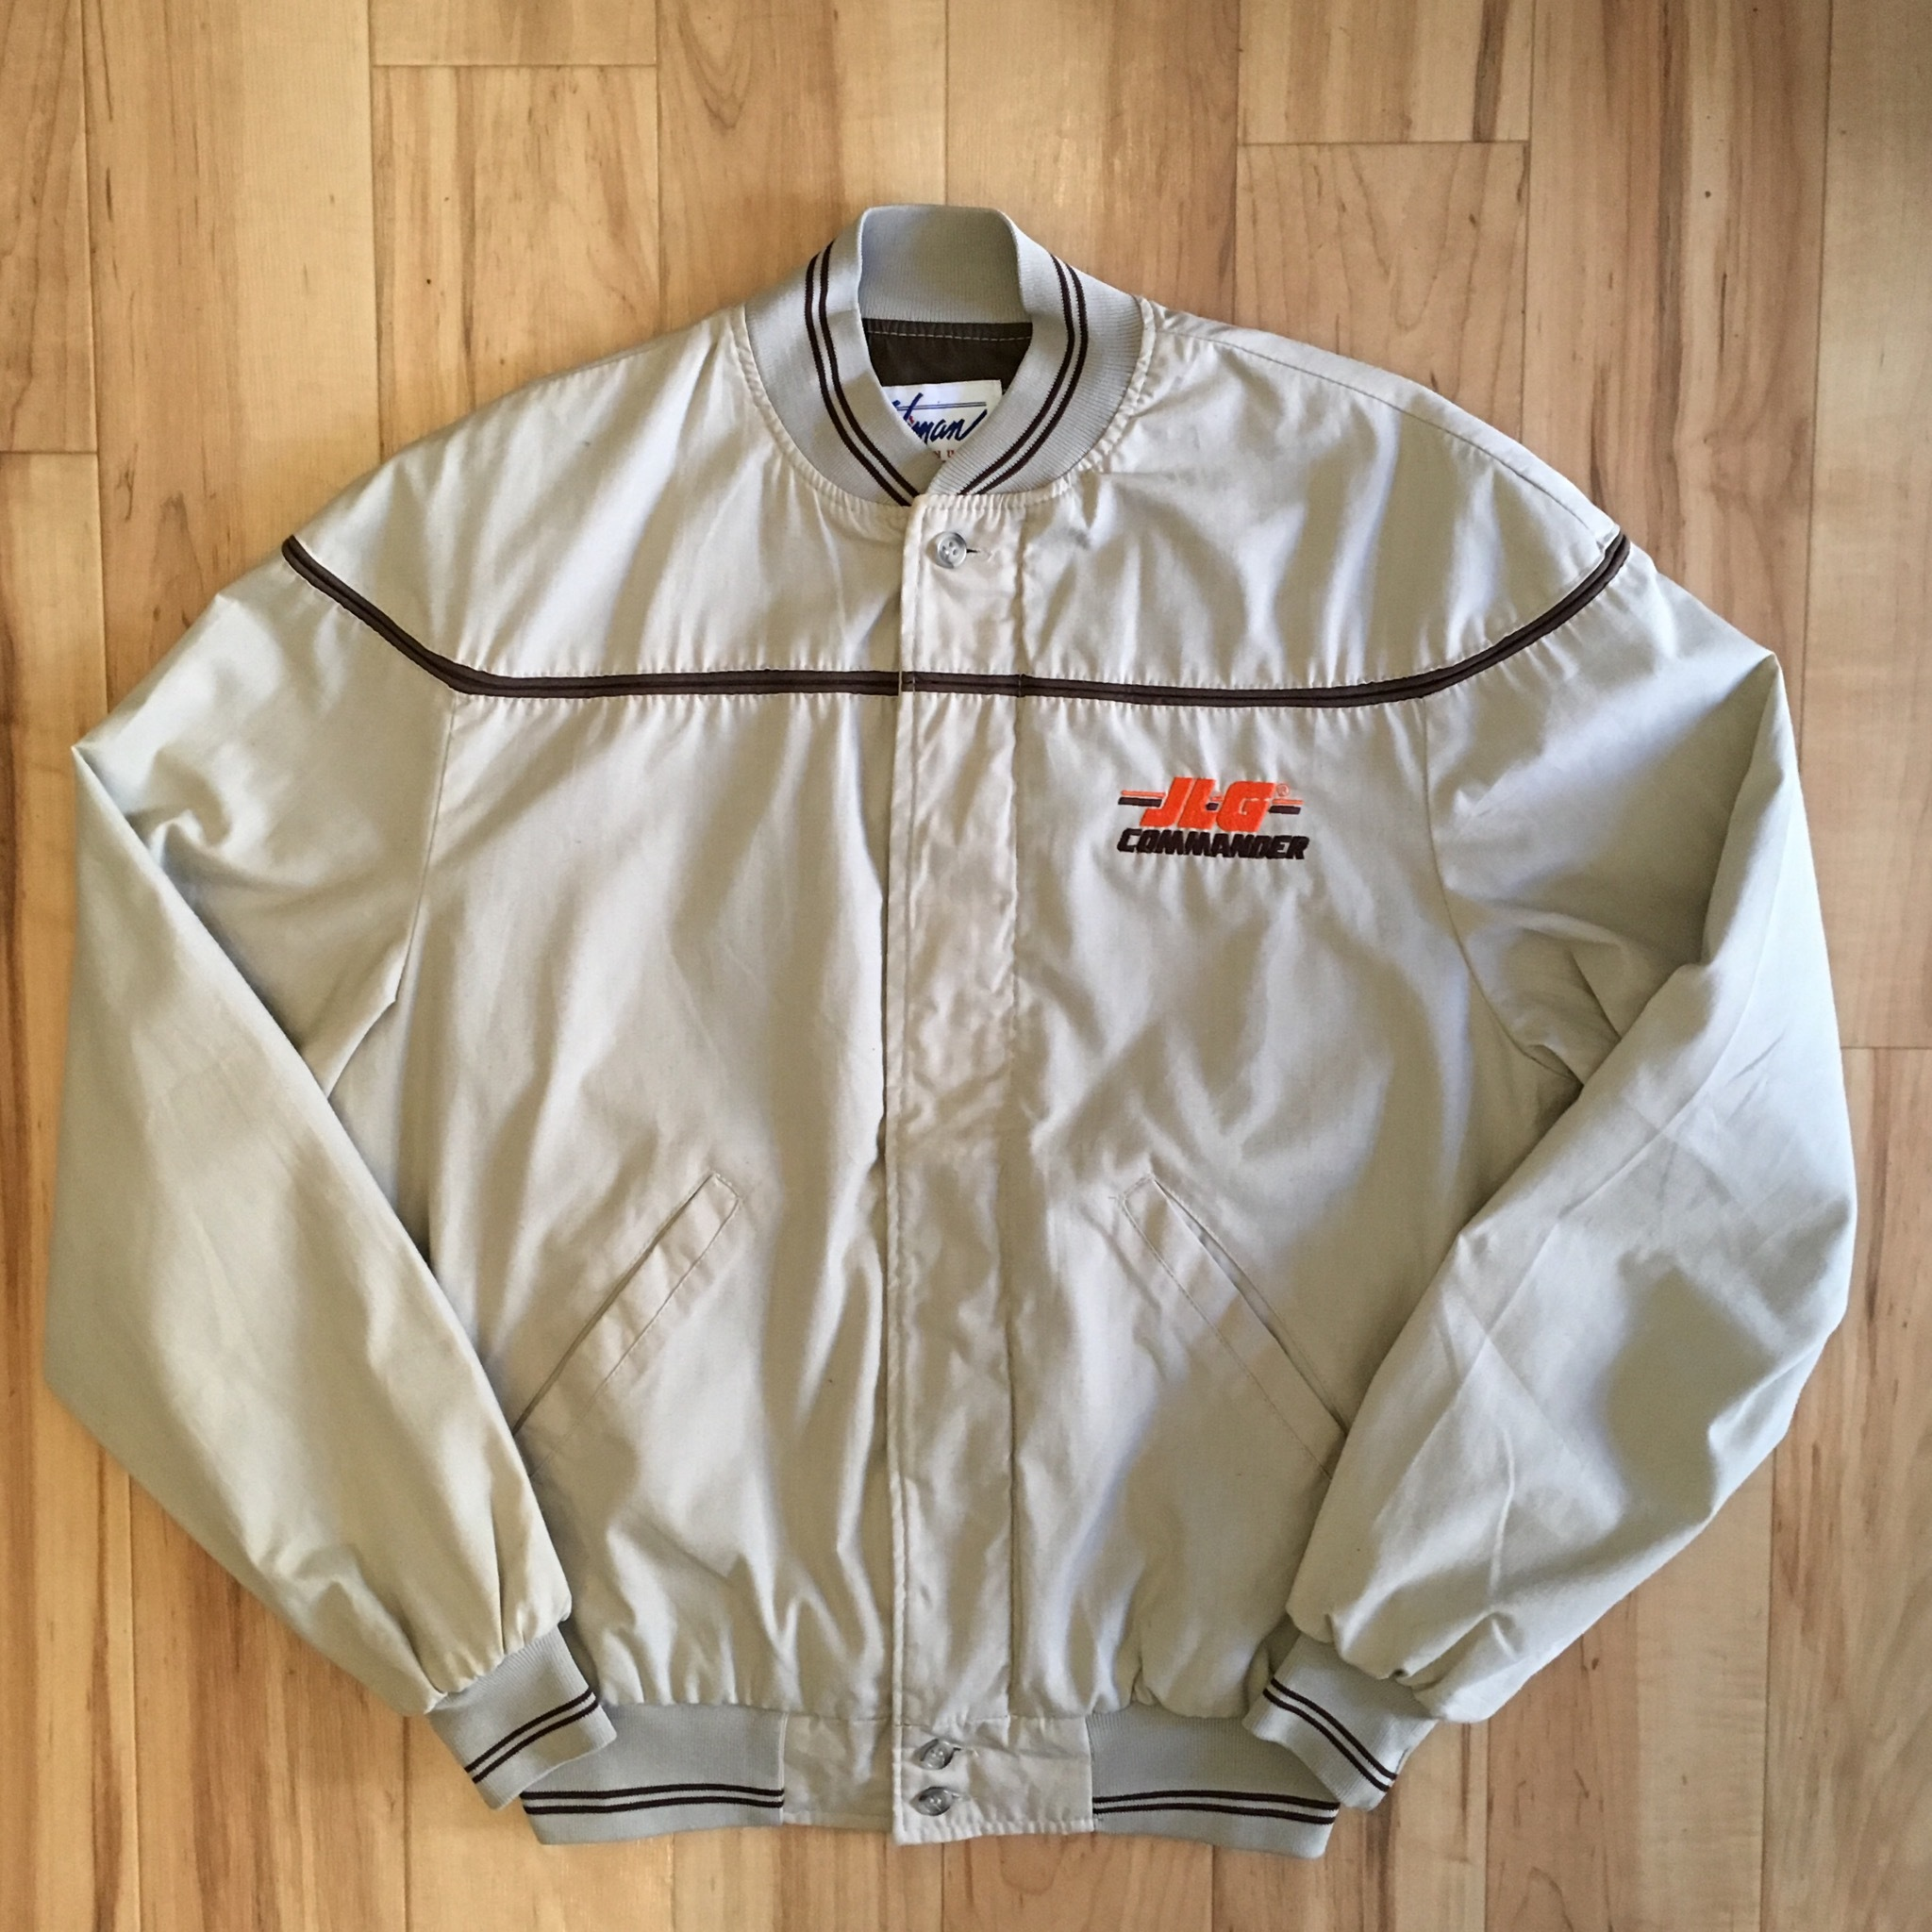 JLG Cup Shoulder Jacket